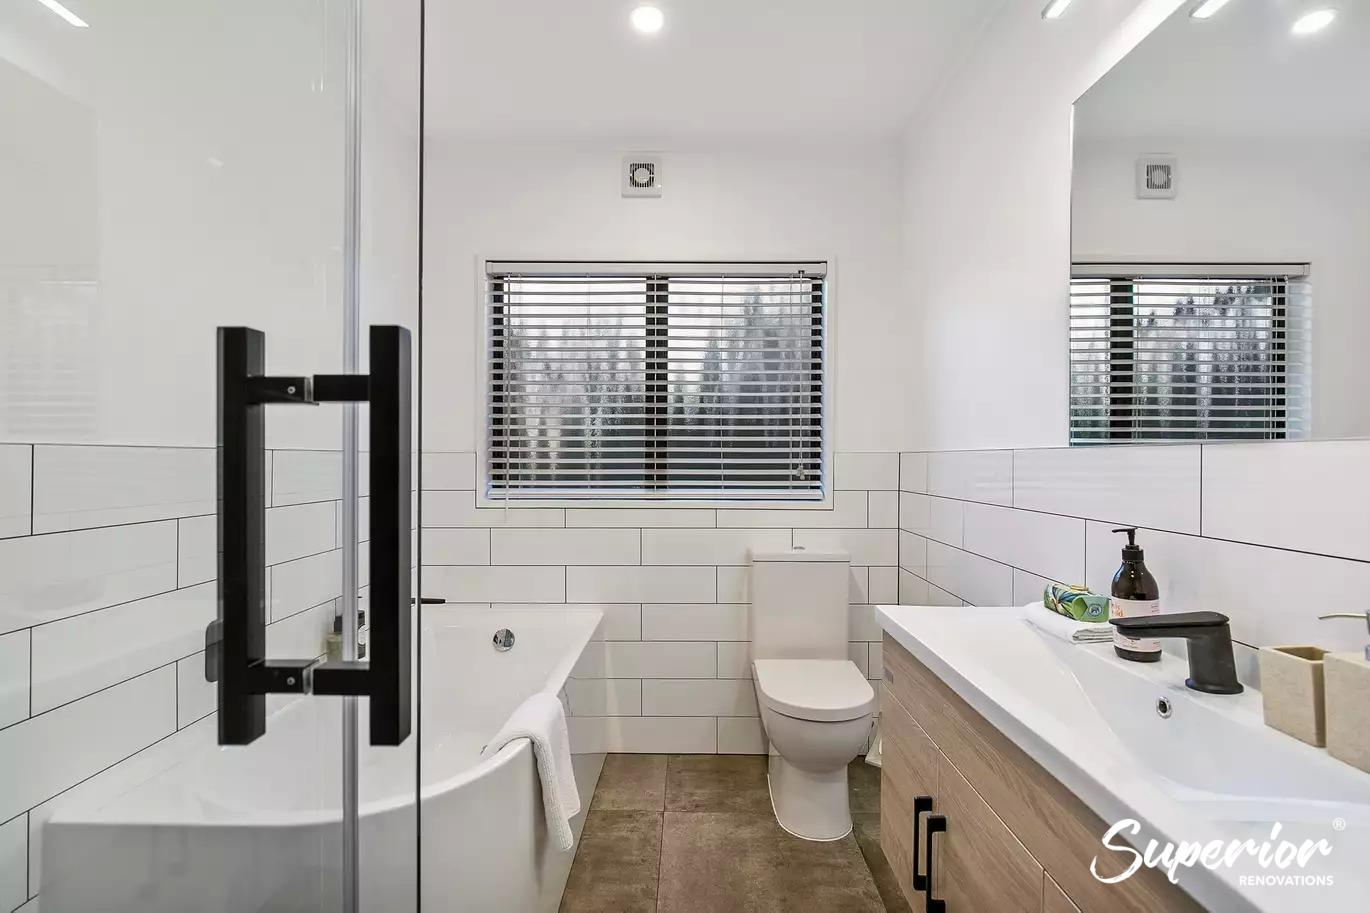 18 Top Tile Trends In Bathroom Design For 2021 Nz Edition